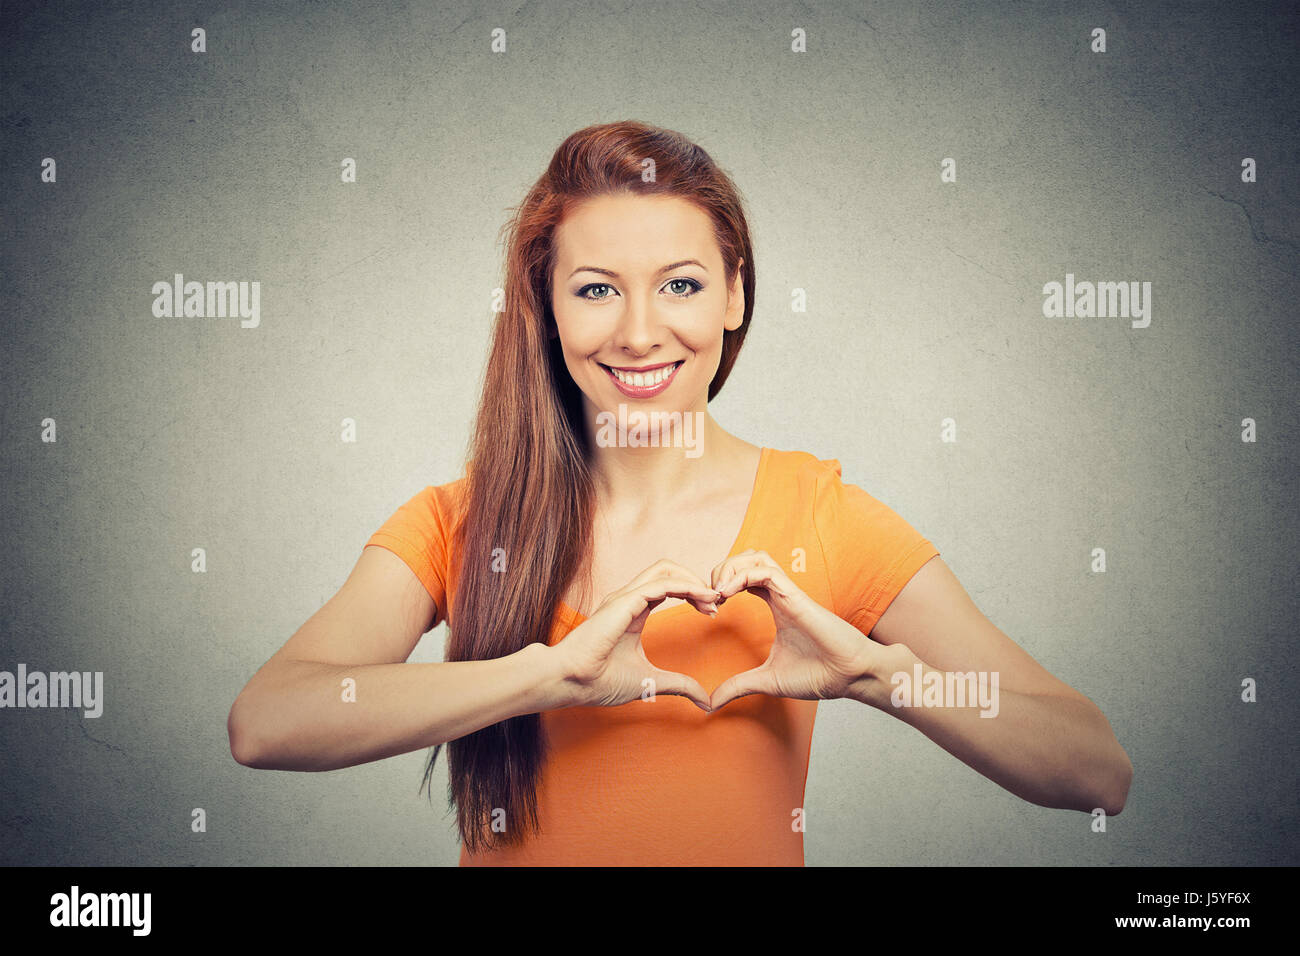 Closeup portrait smiling cheerful happy young woman making heart sign with hands isolated grey wall background. - Stock Image